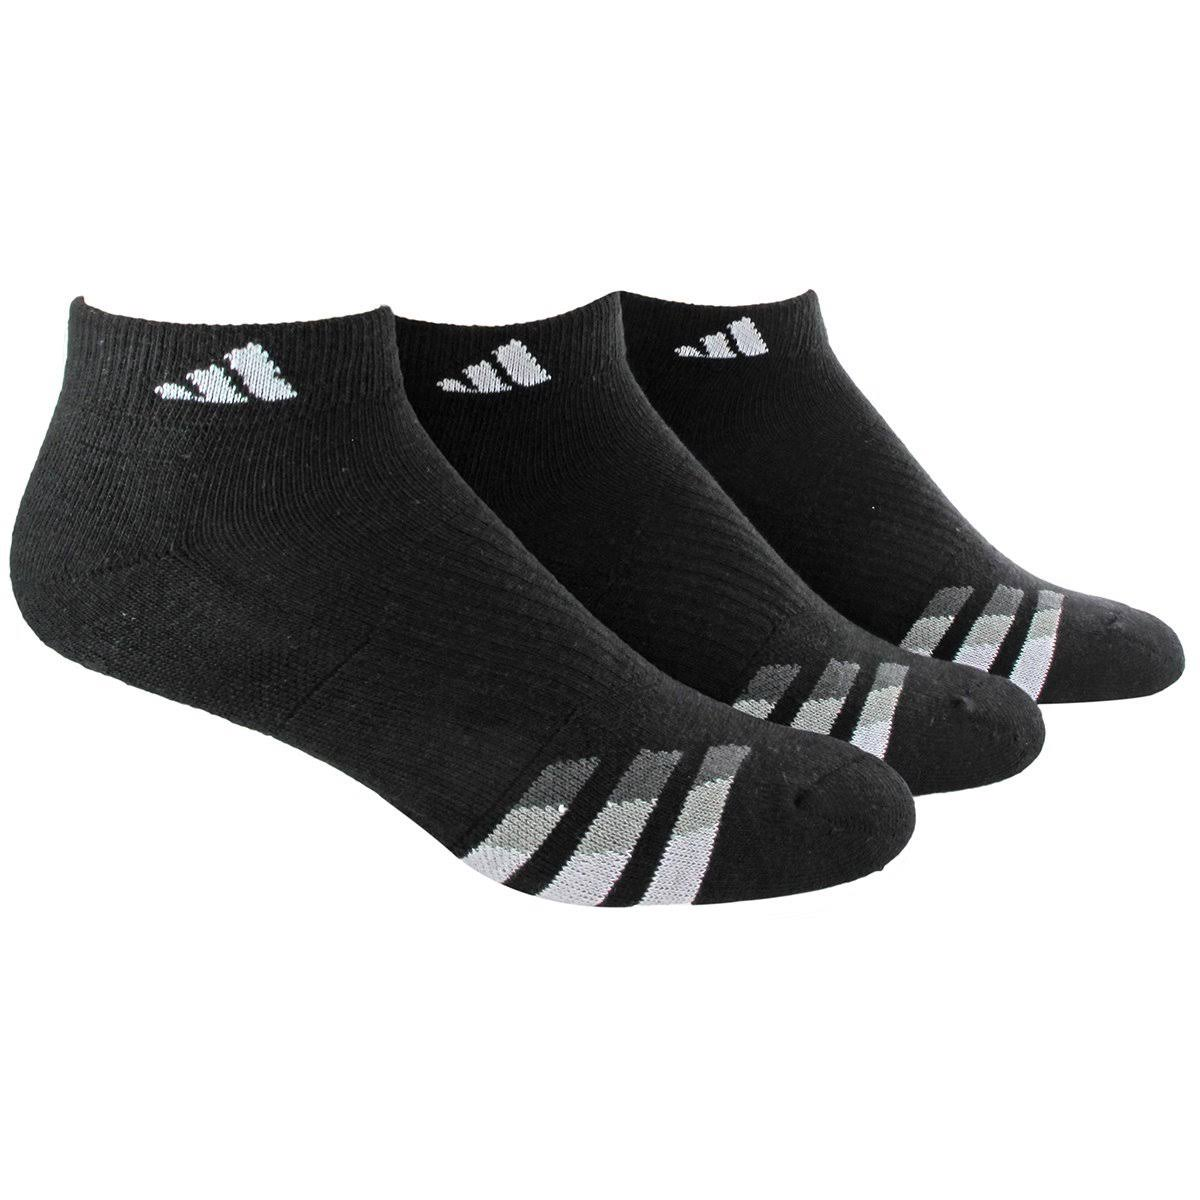 Adidas Men's 3-Pack Performance Low-Cut Socks, Size 6-12, Black